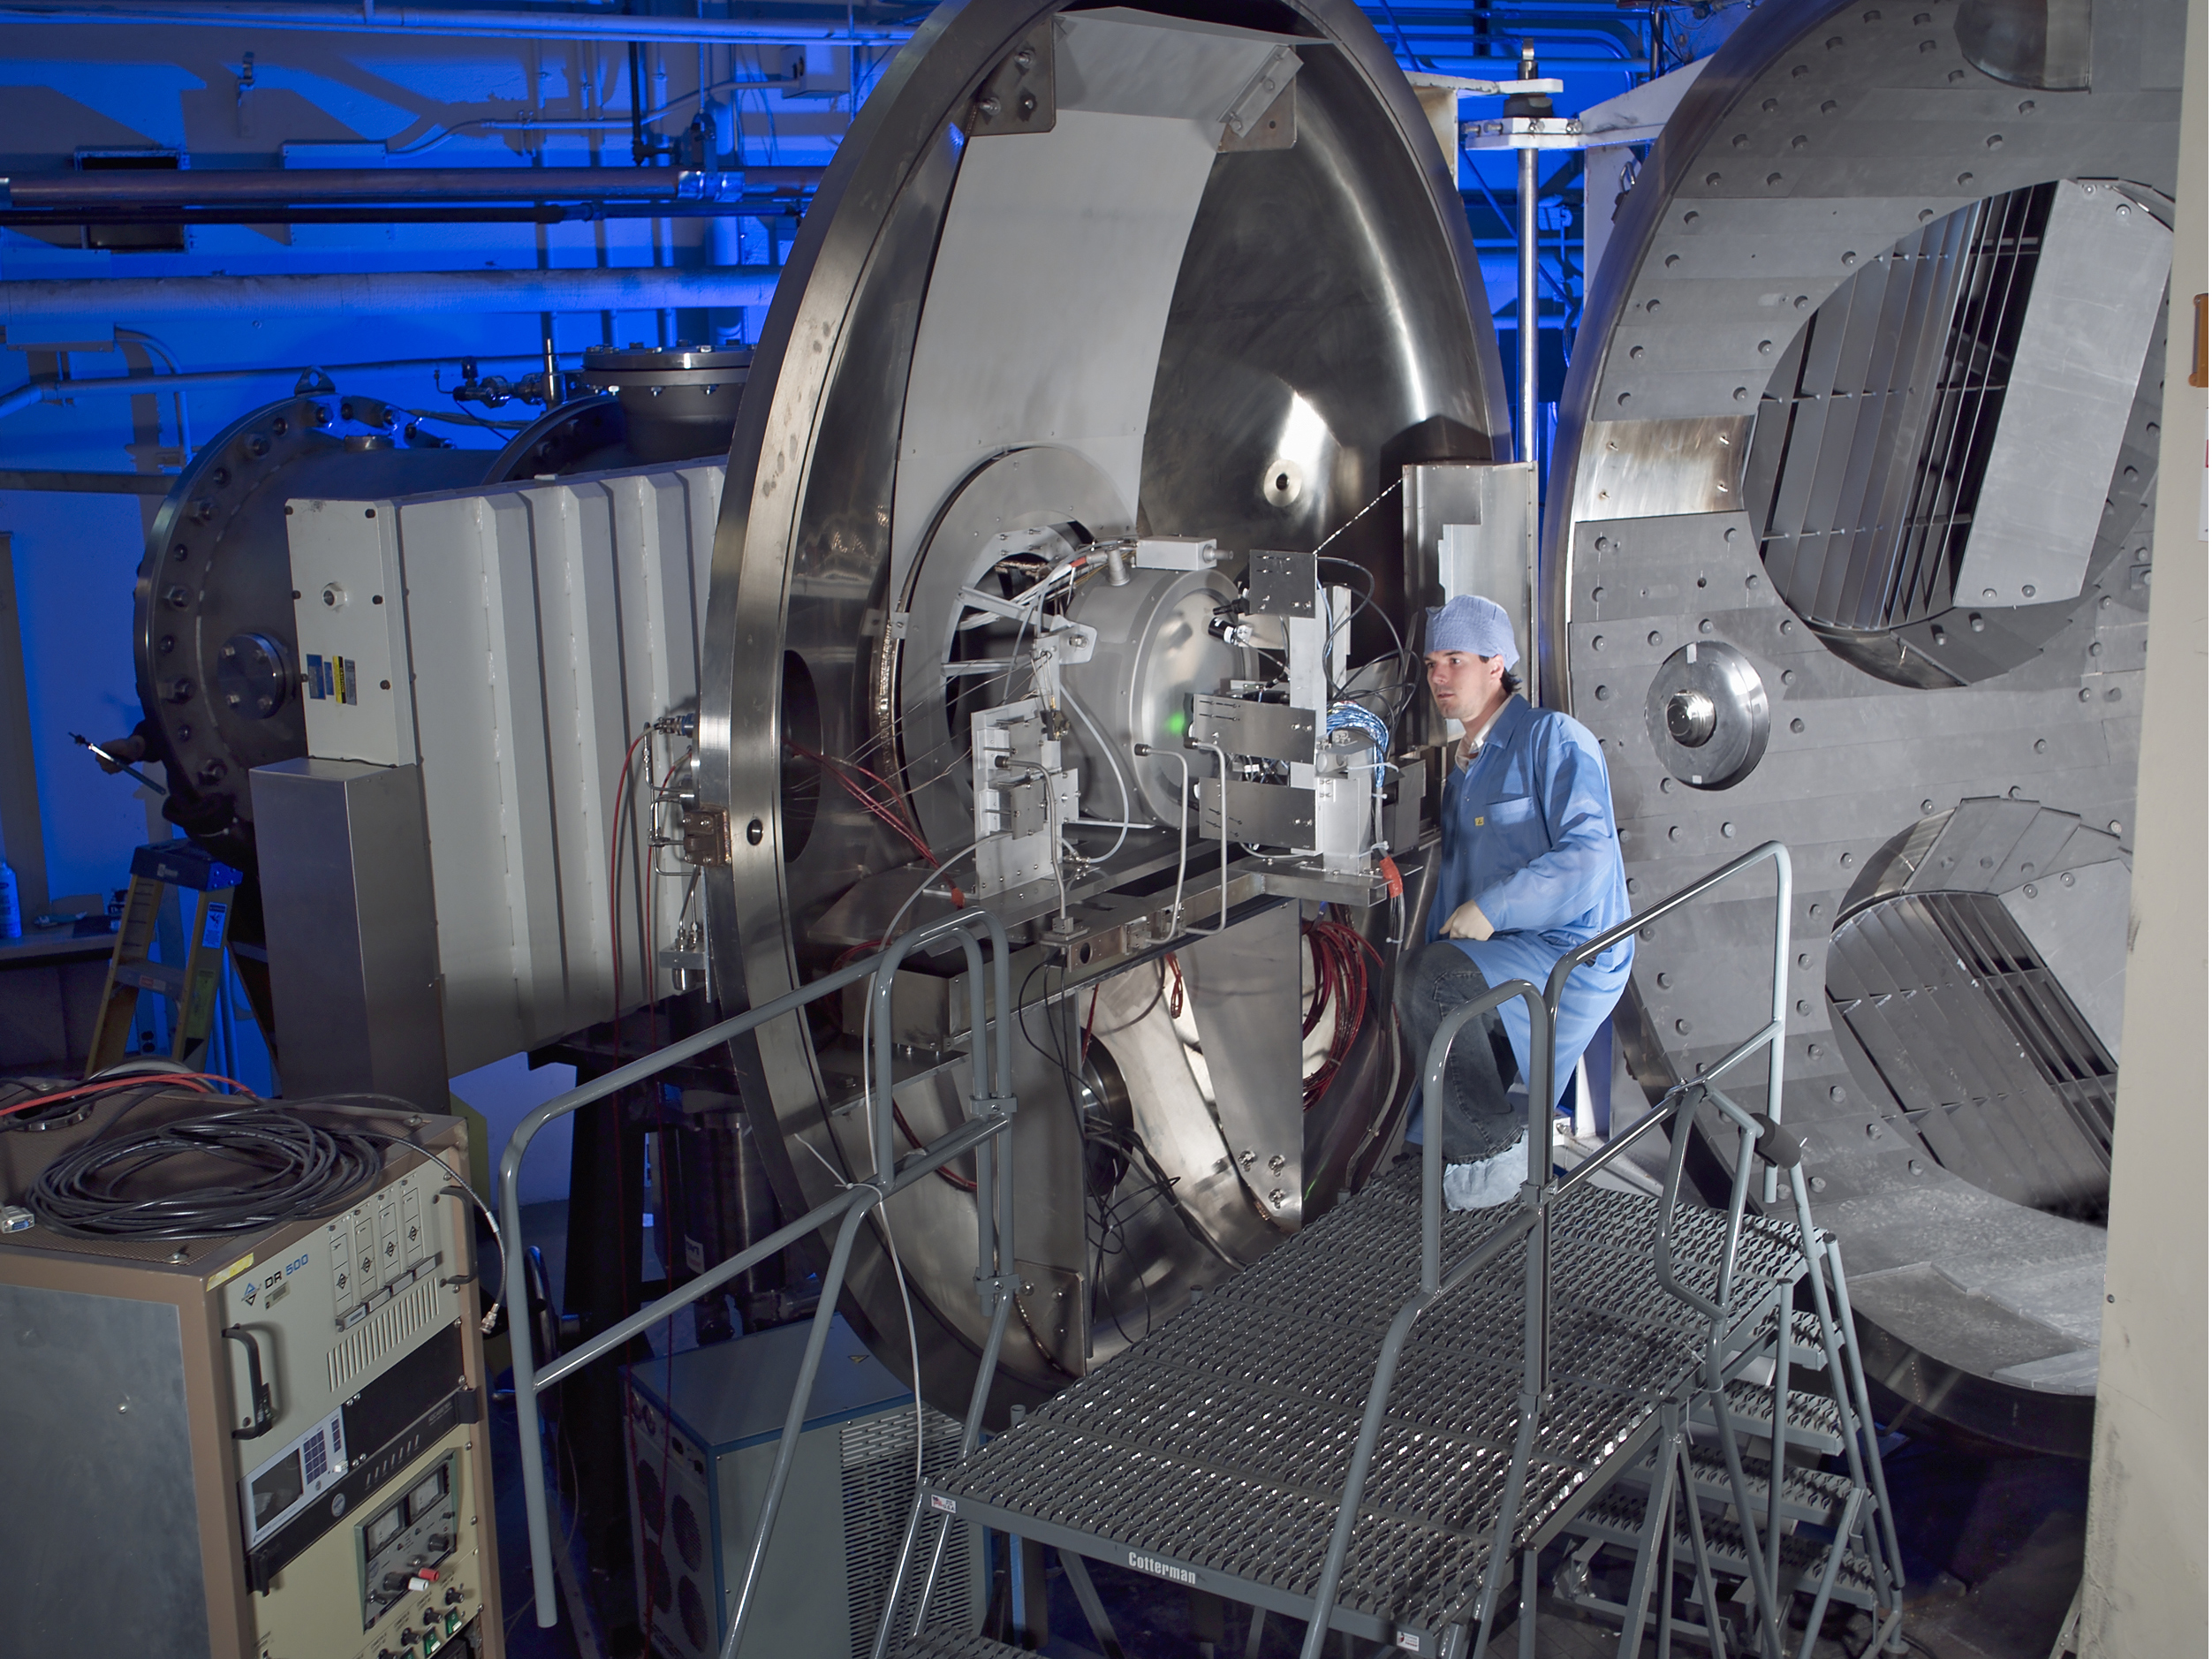 Ion propulsion gives deep space missions a boost – Climate ...